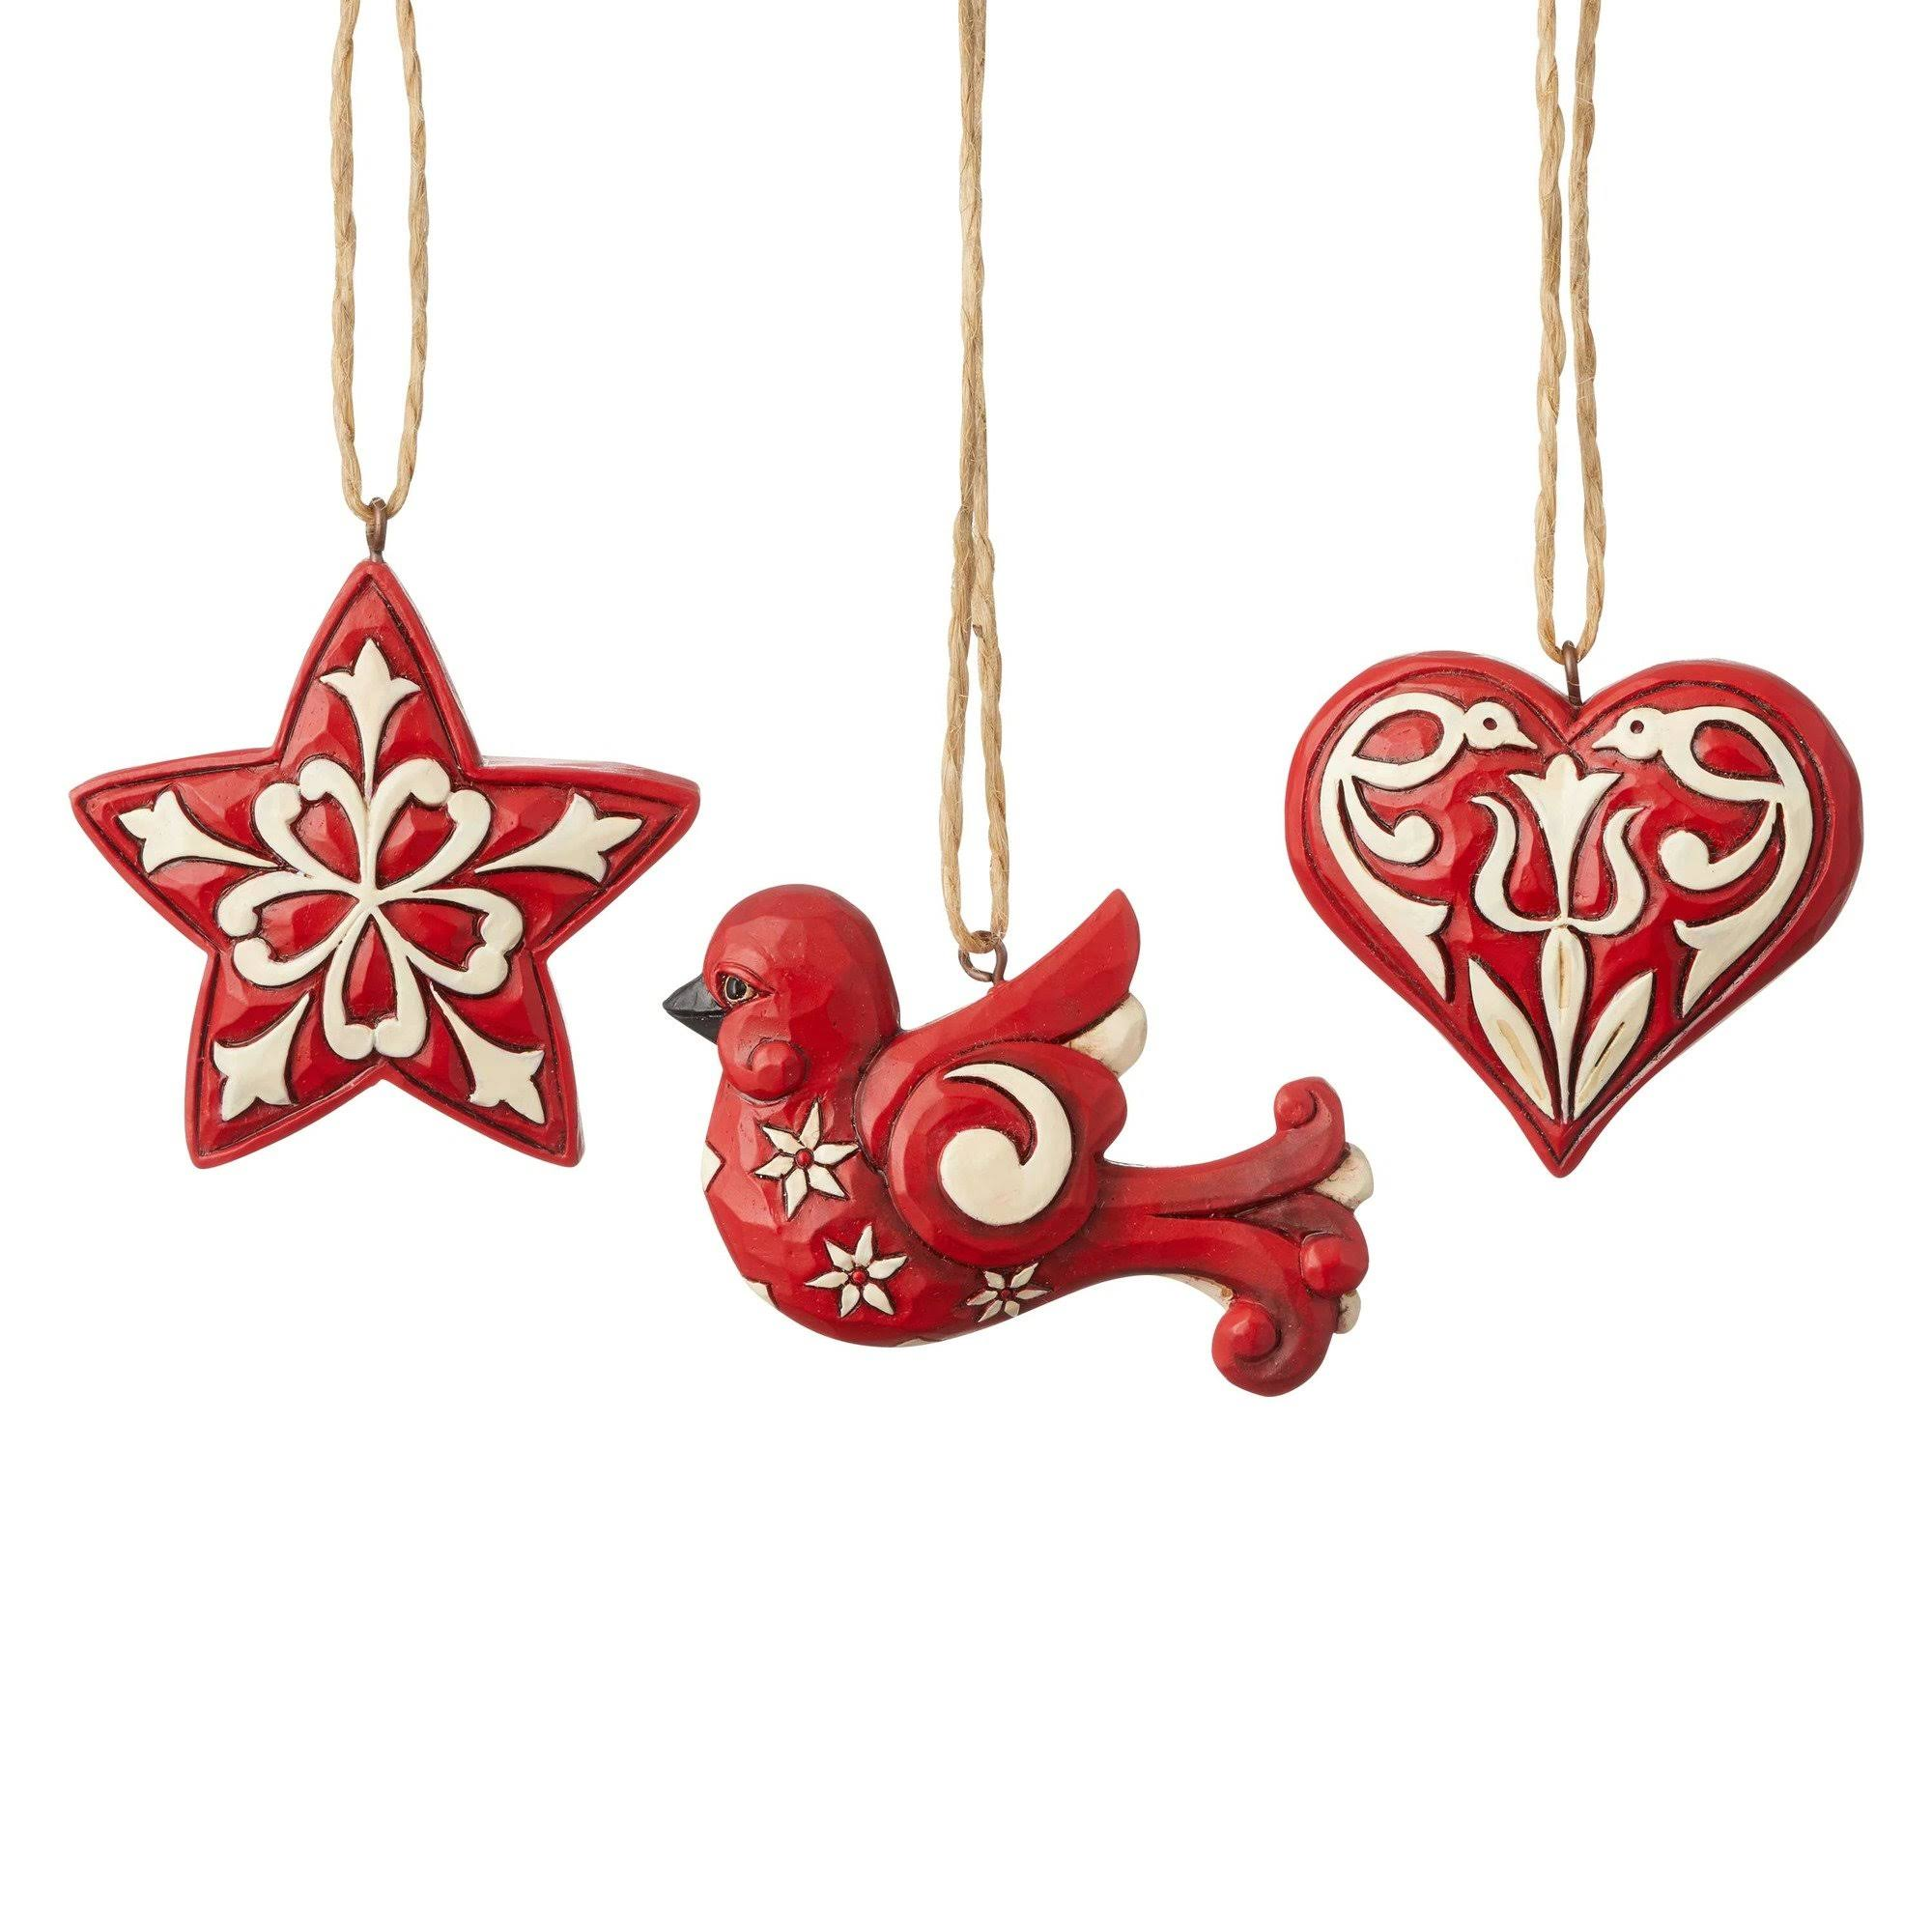 Jim Shore Nordic Noel (Set of 3) Mini Hanging Ornaments